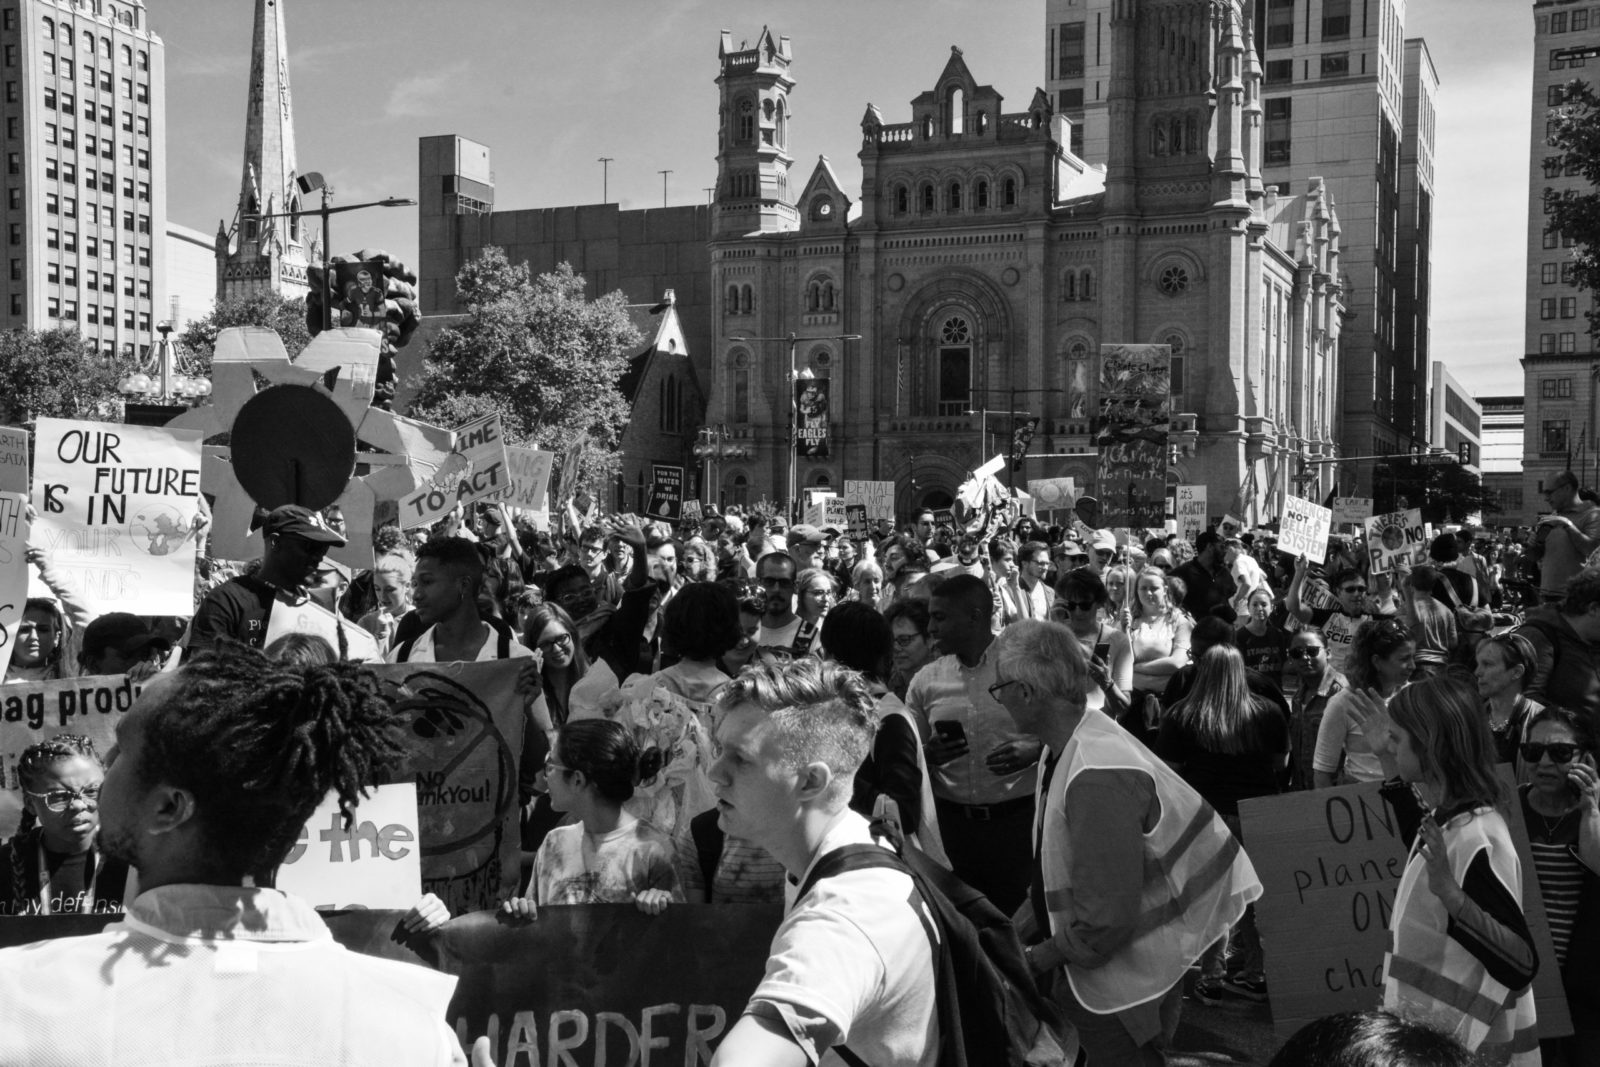 A black and white photo of the September 2019 Climate Strike in Philadelphia.